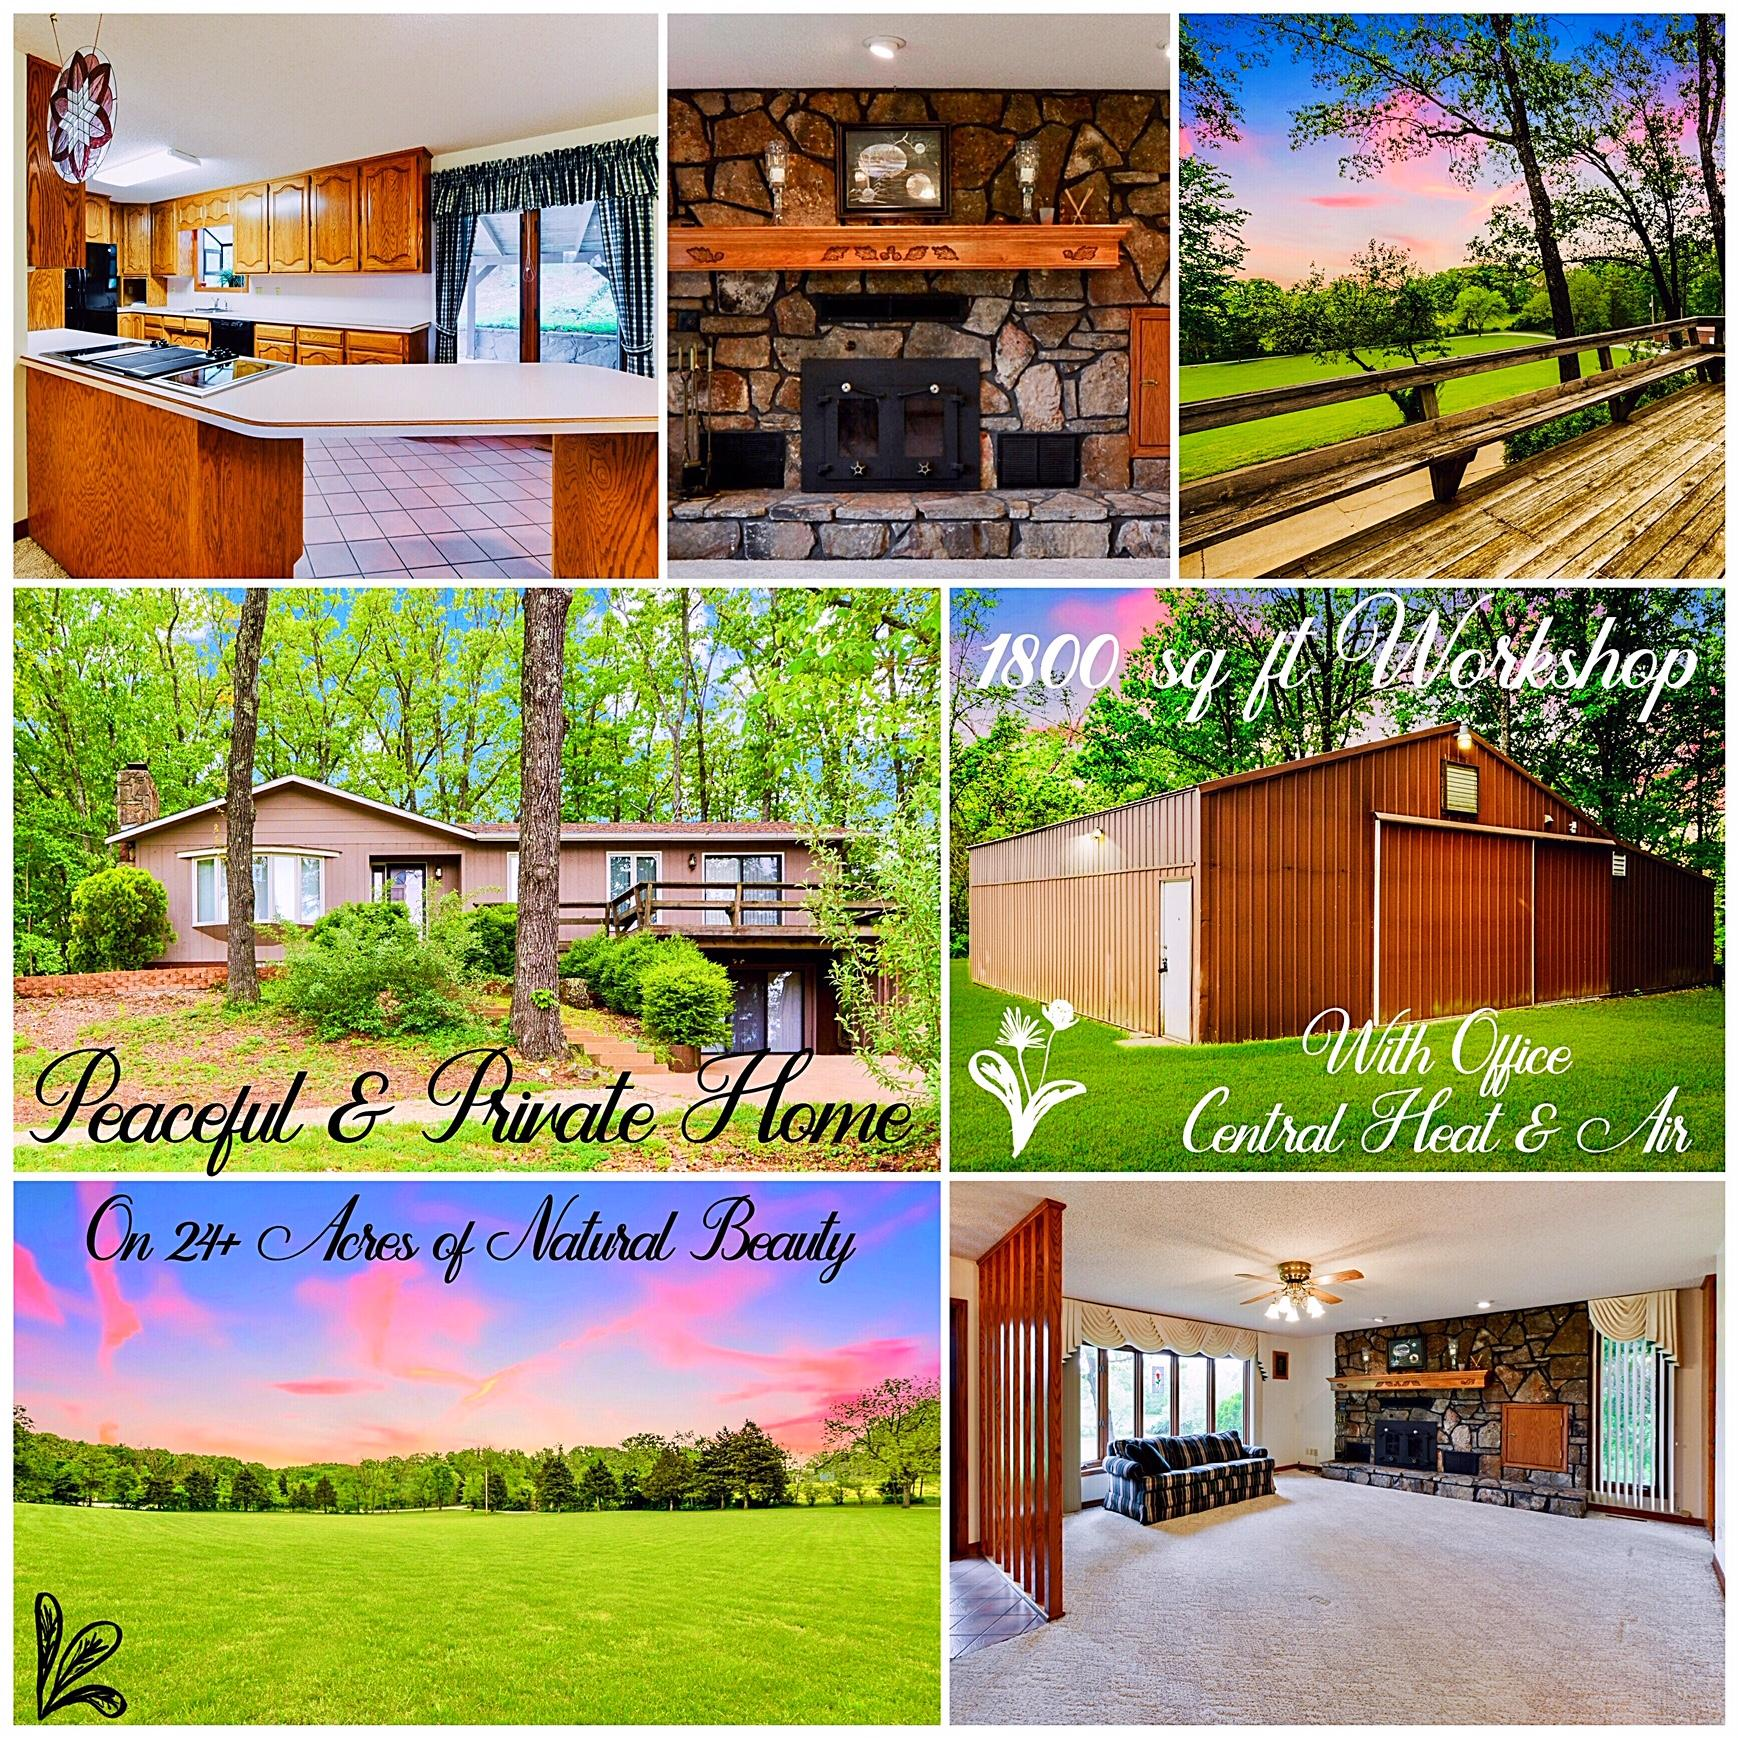 2168 West State Highway Galena, MO 65656